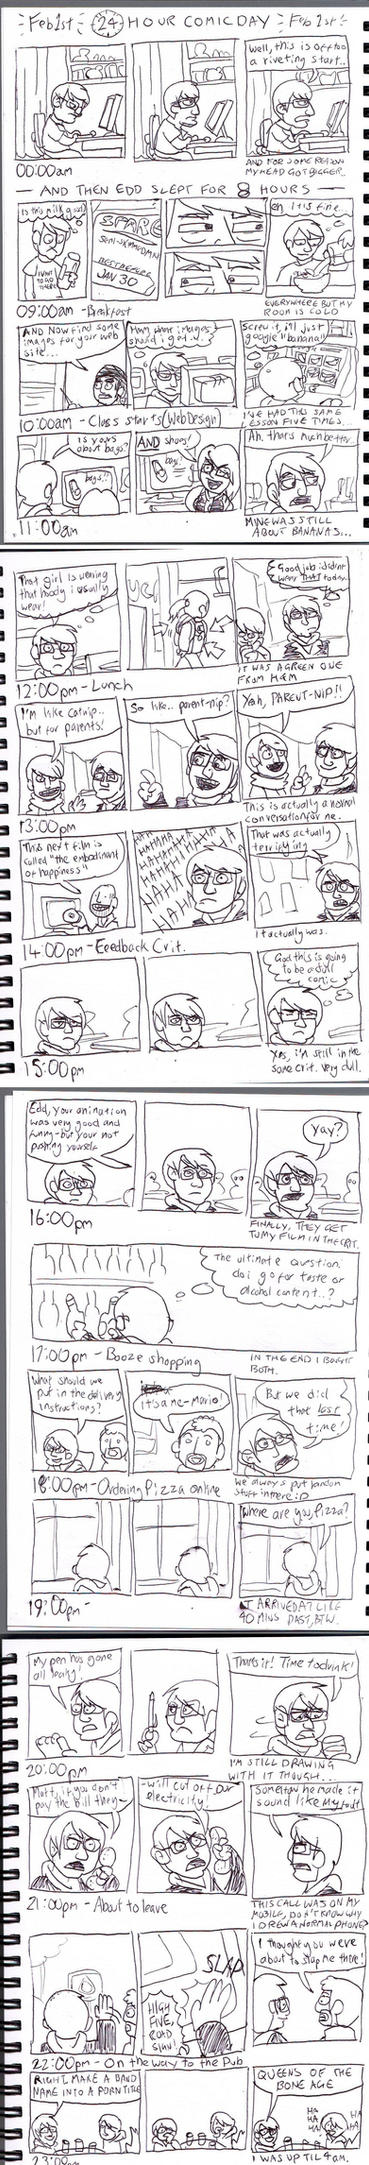 Hourly Comic Day 2011 by eddsworld